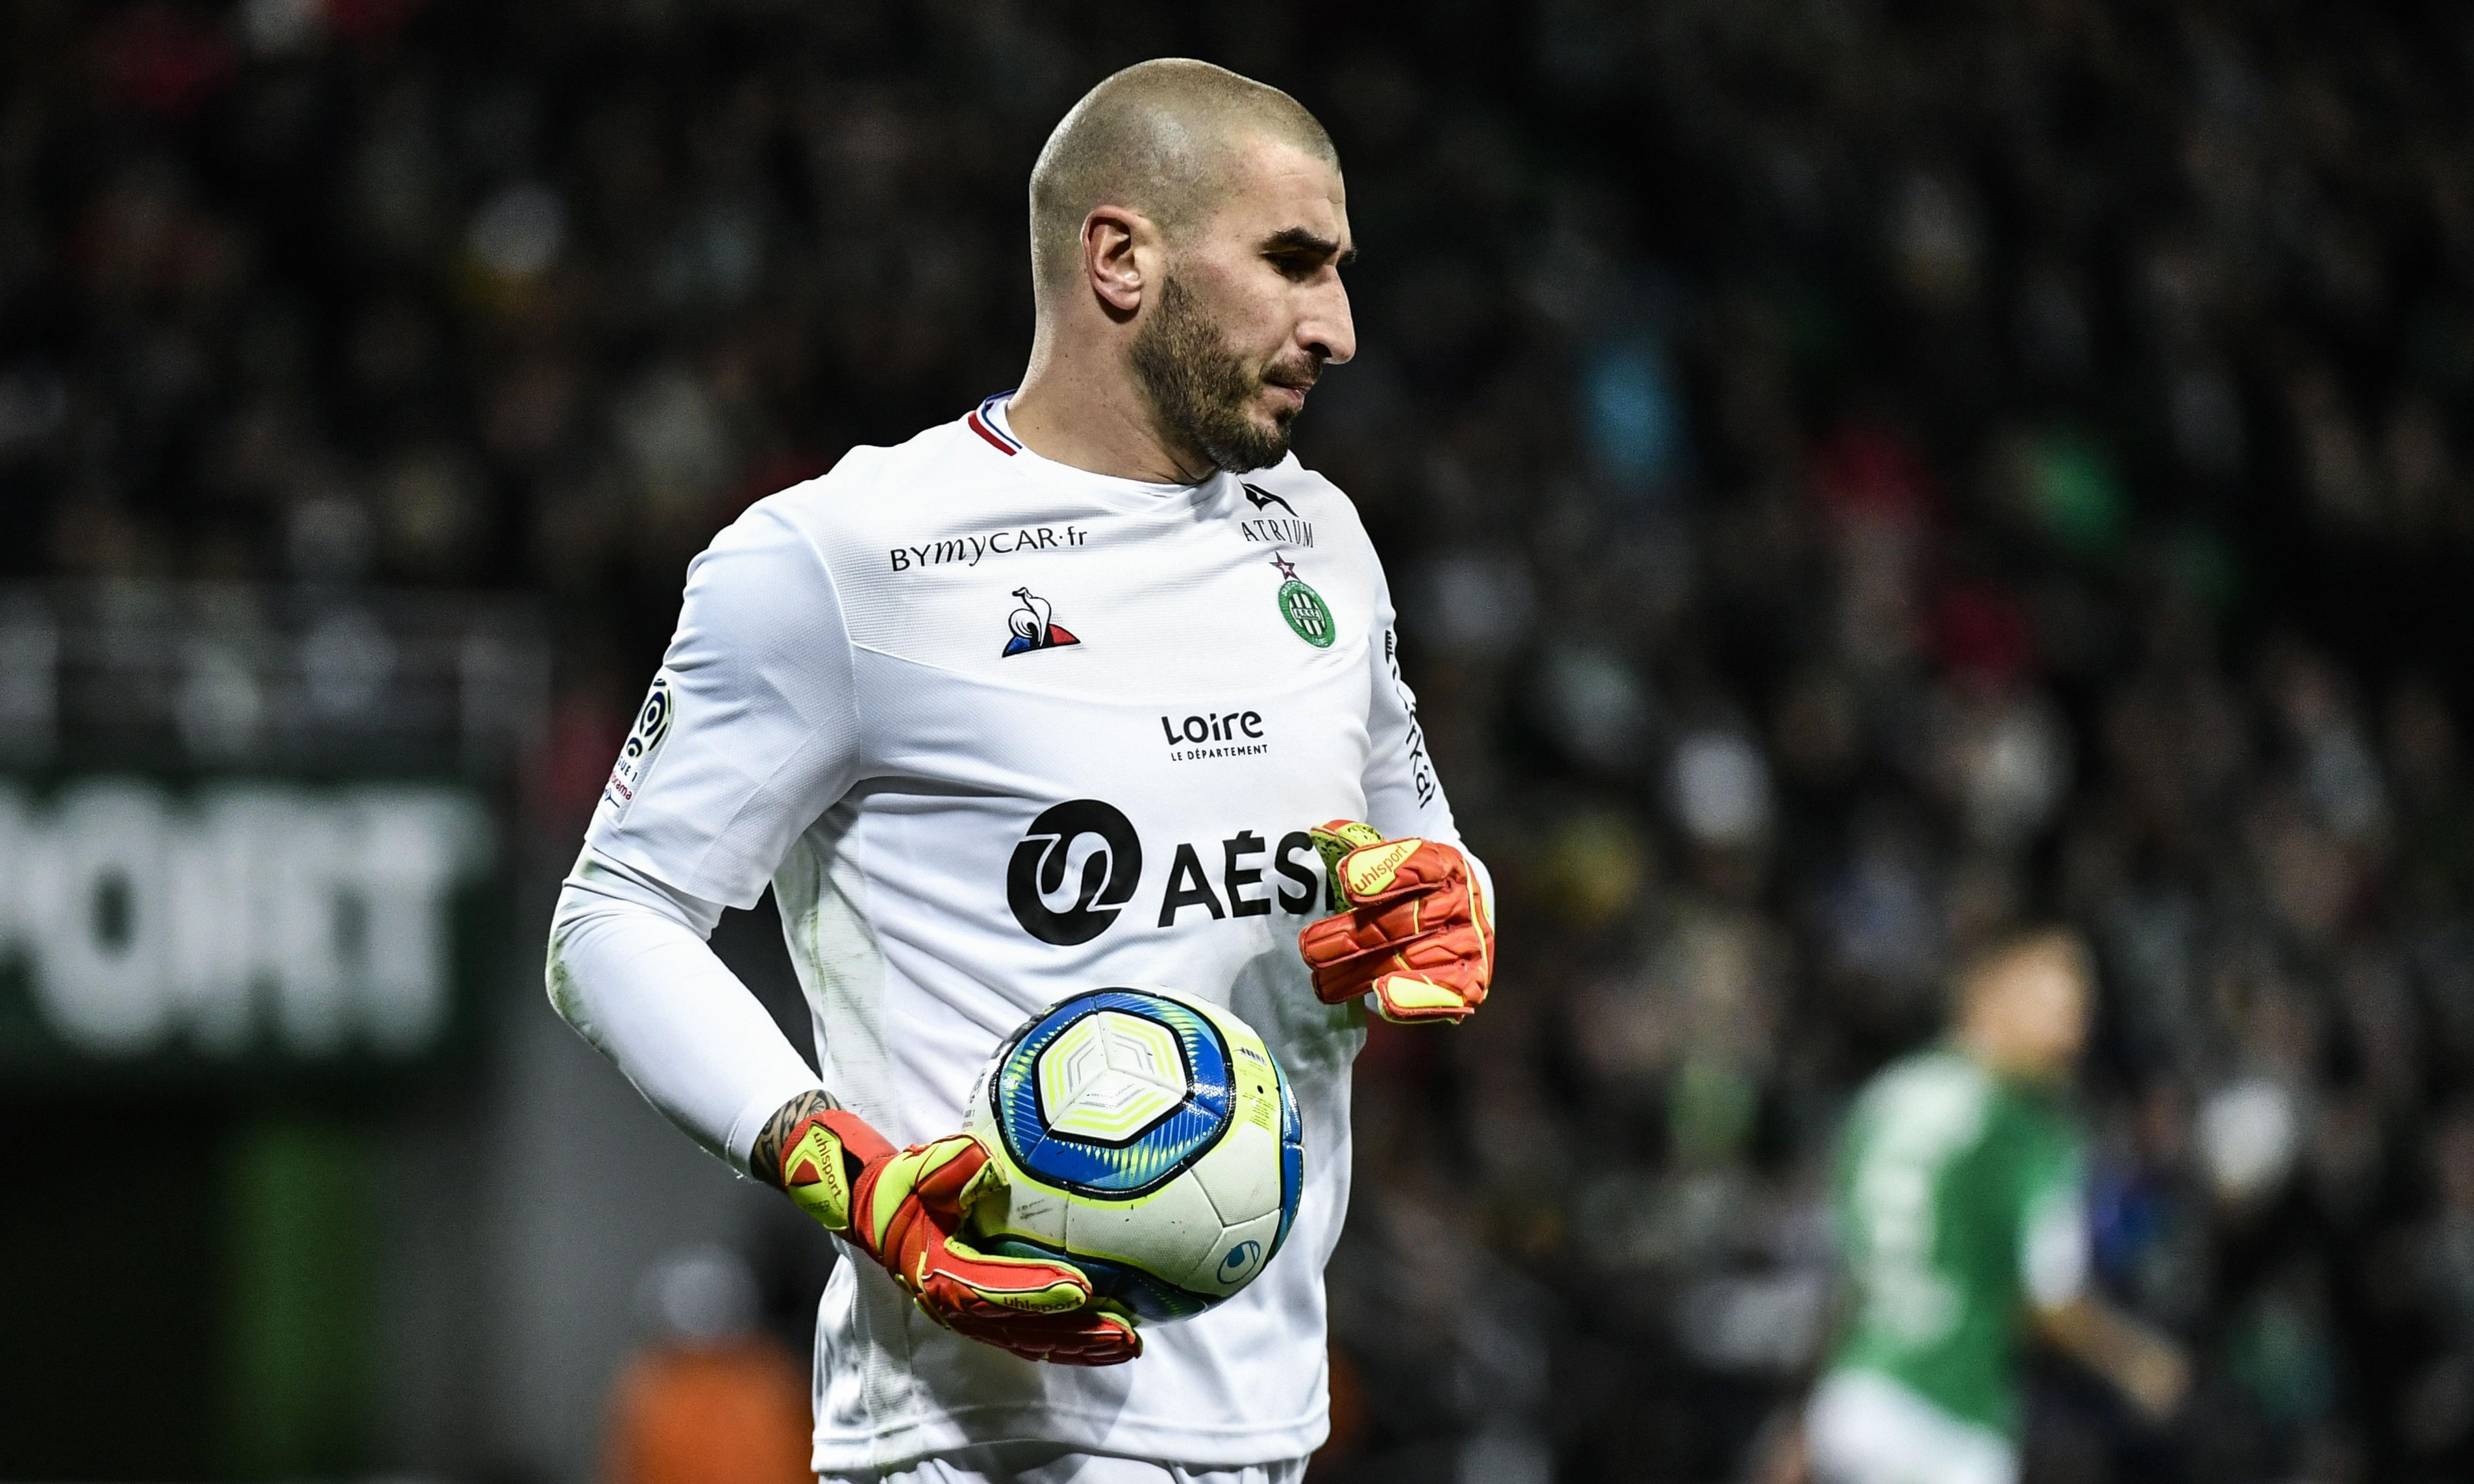 In praise of Stéphane Ruffier, the most underrated goalkeeper in Europe